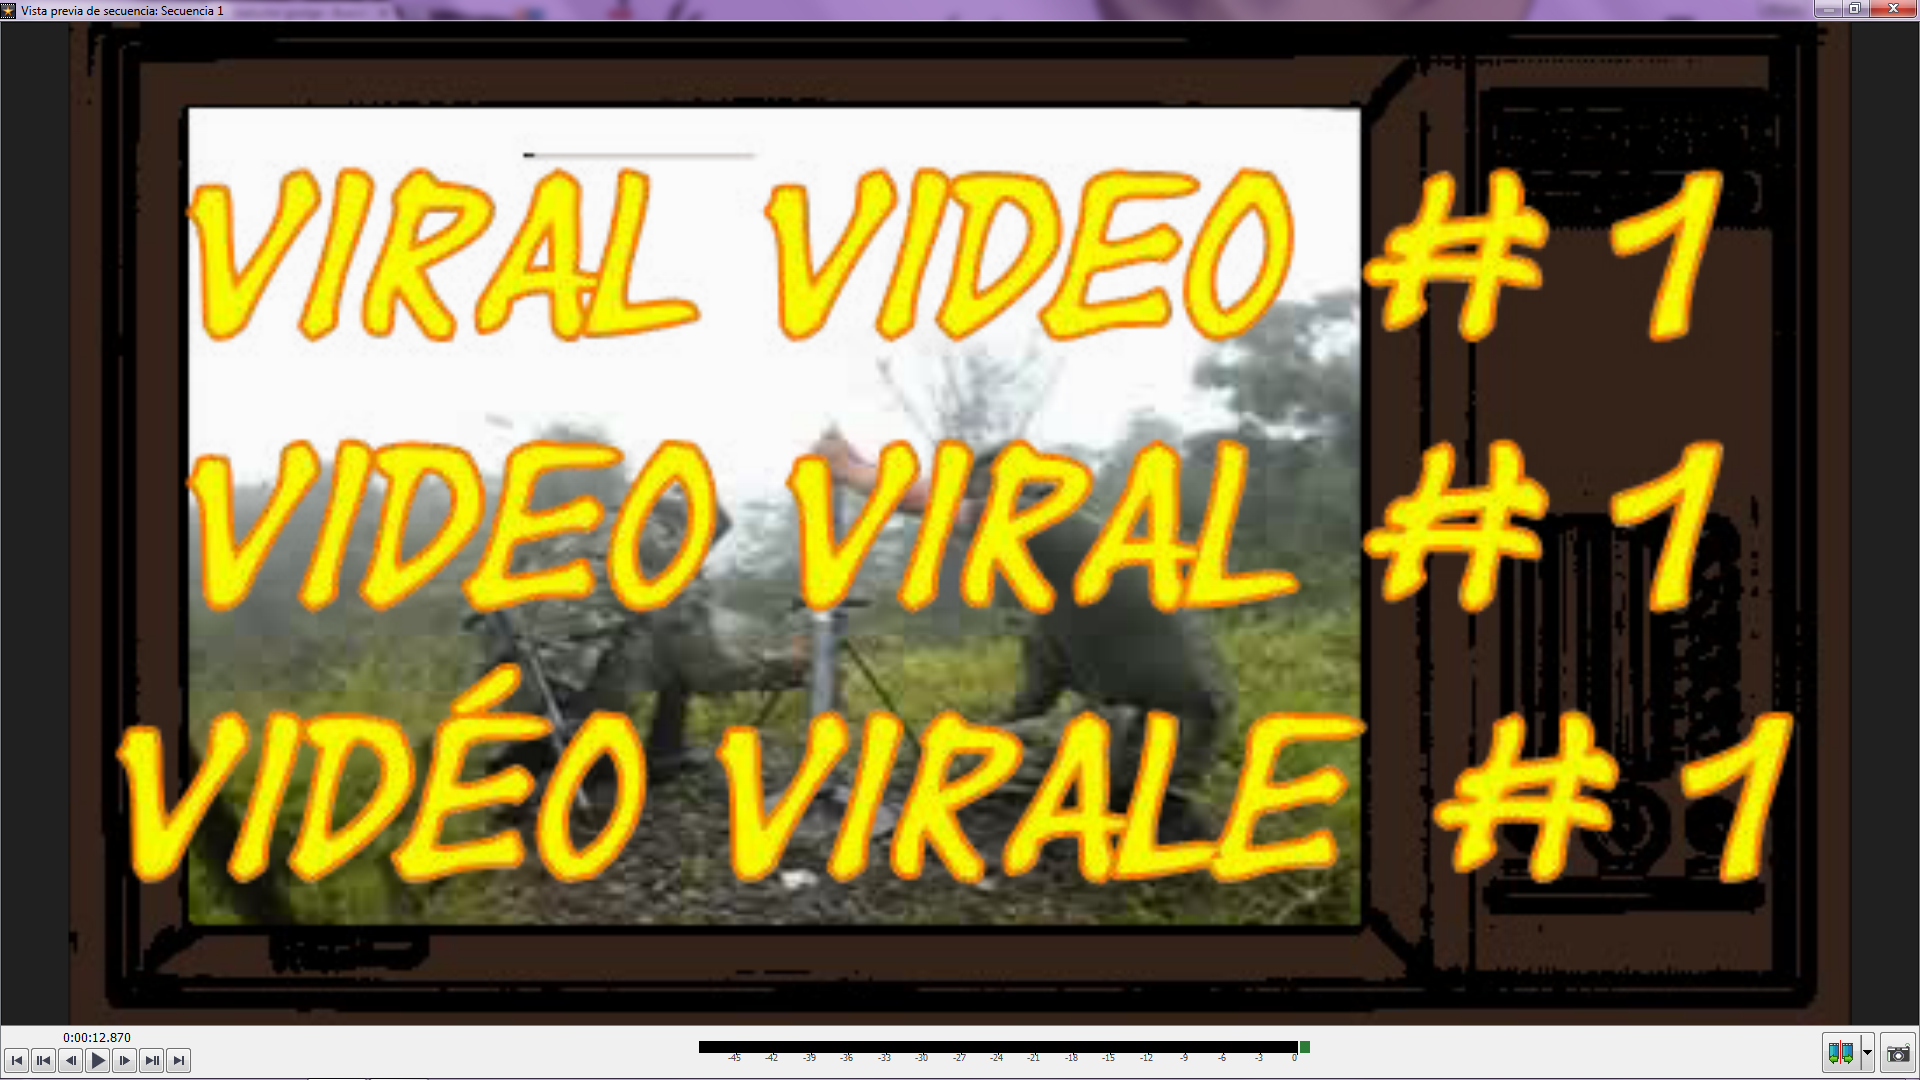 SI TE RÍES PIERDES, videos virales, videos de caidas, videos chistosos,videos de risa, videos de humor,videos graciosos,videos mas vistos, funny videos,videos de bromas,videos insoliyos,fallen videos,viral videos,videos of jokes,Most seen,